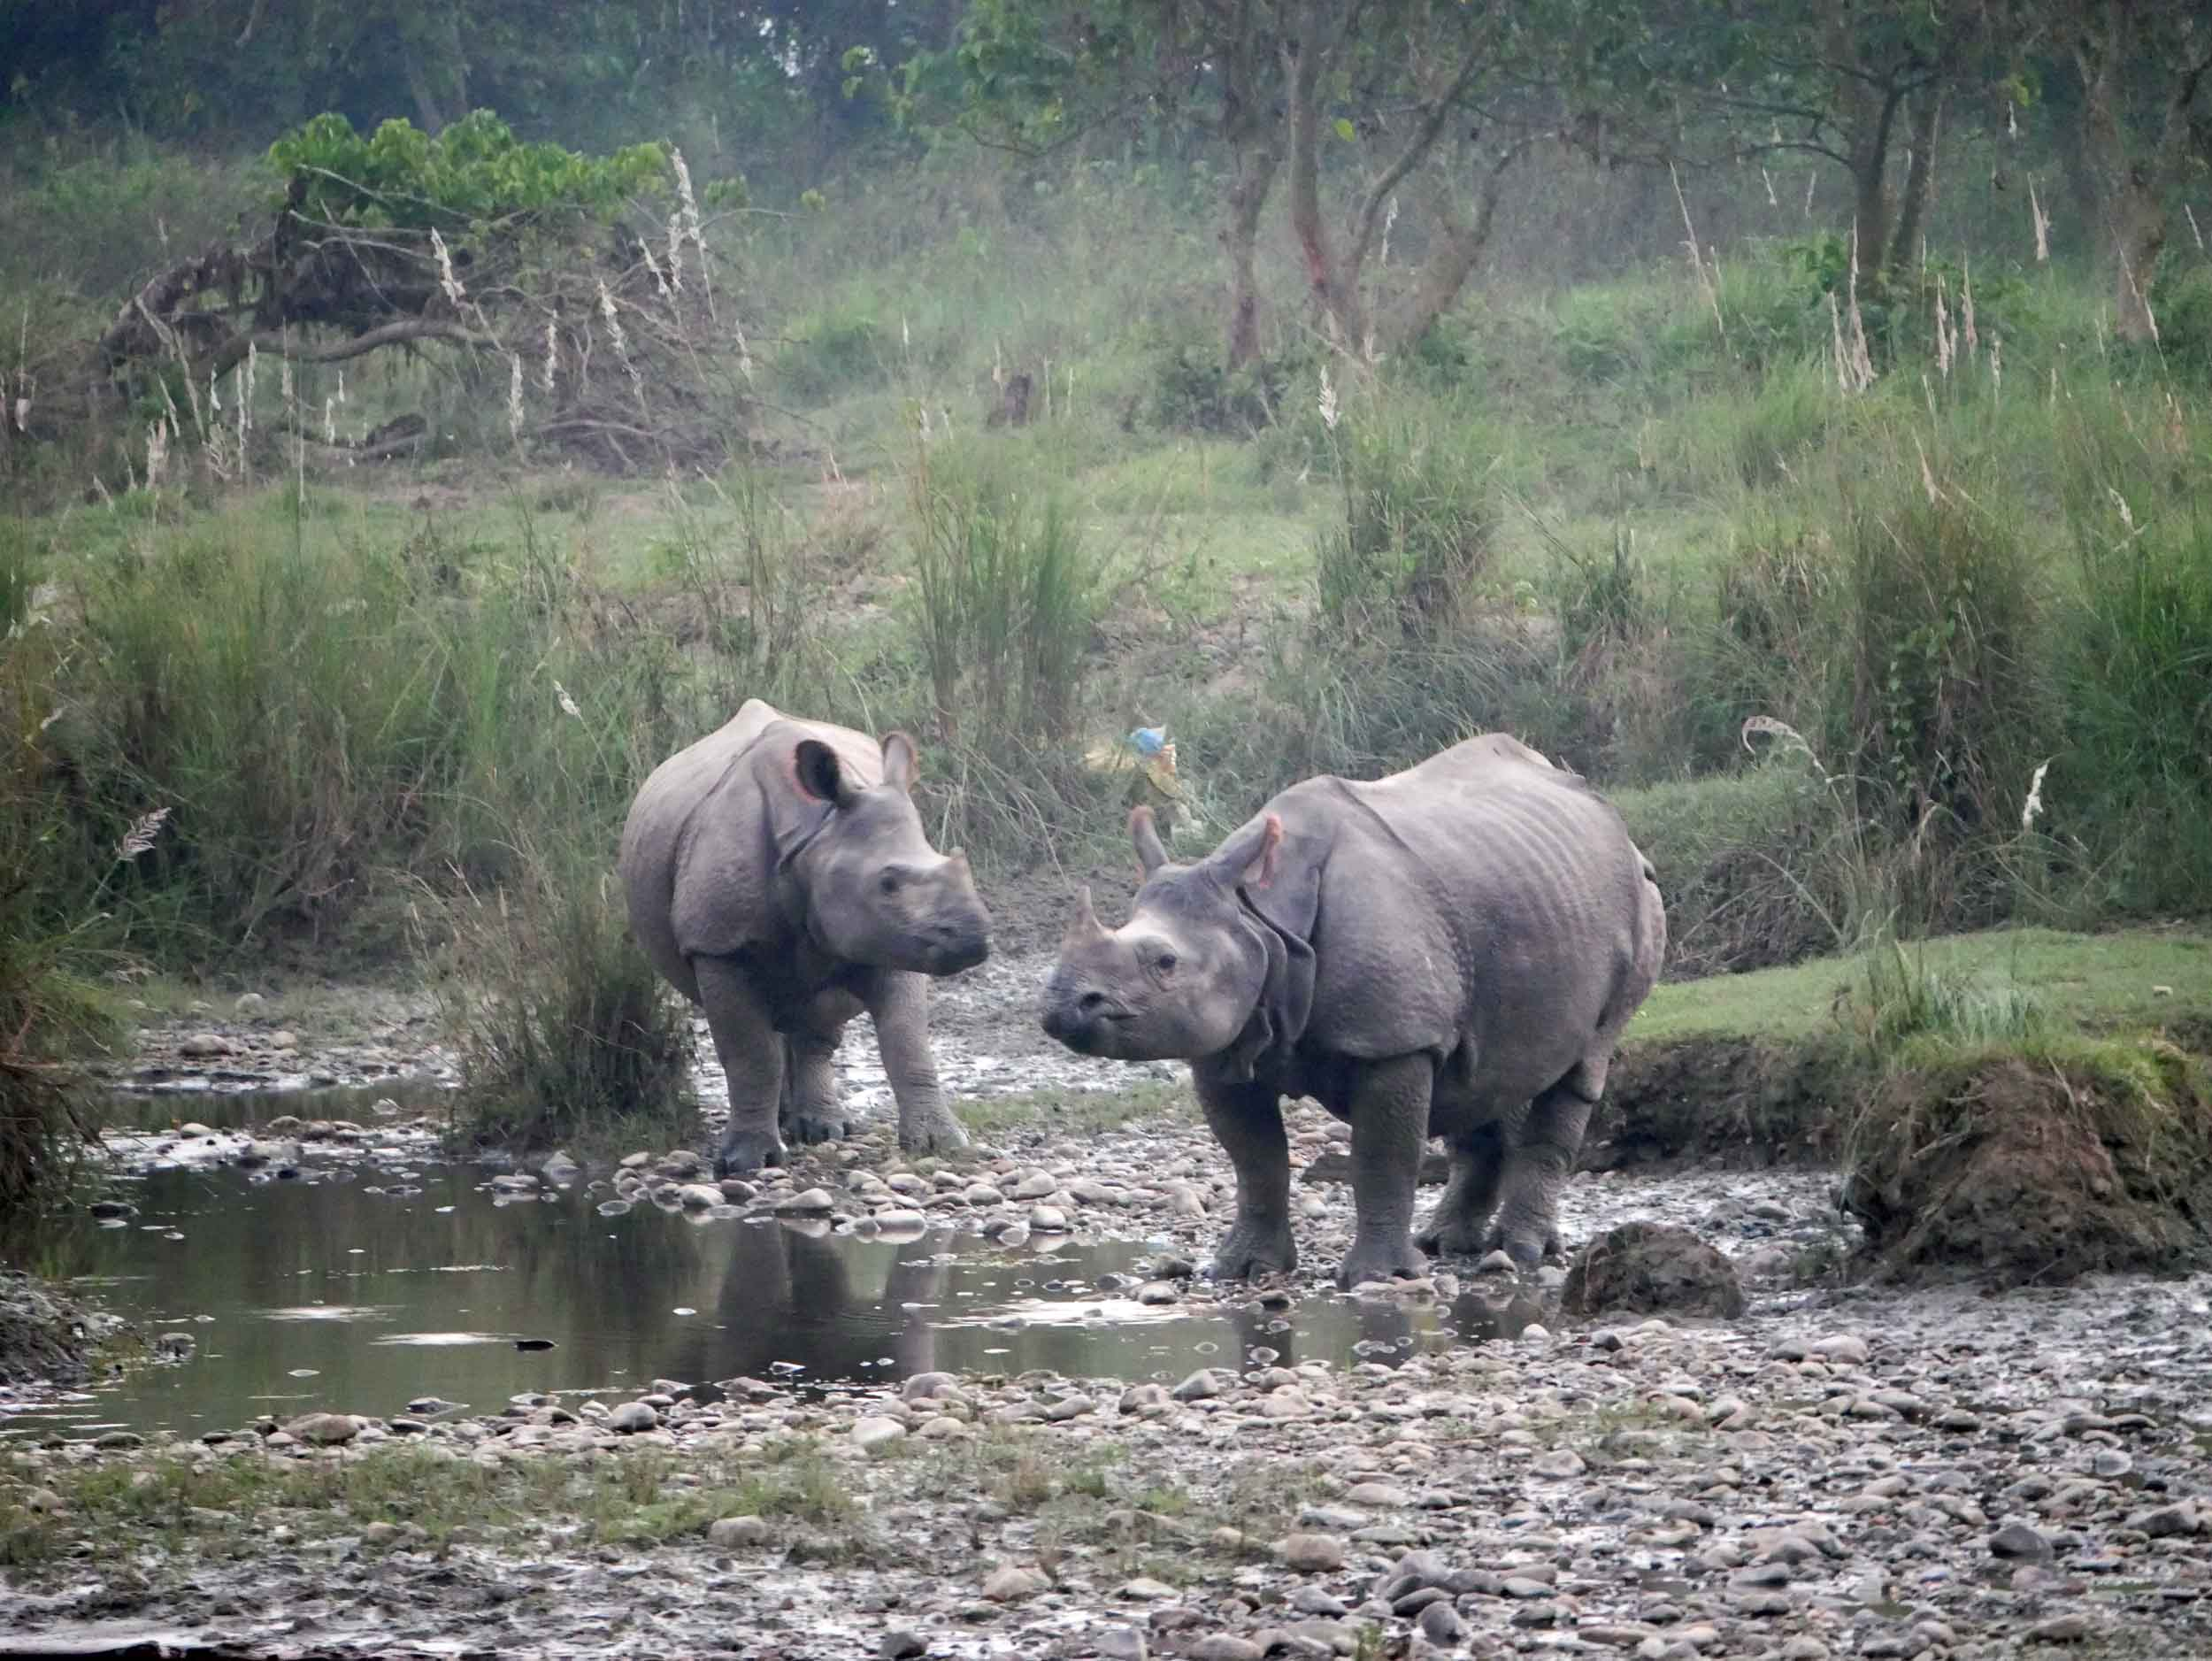 An auspicious start to our time in Chitwan National Park was viewing this pair Greater One-Horned Rhinos drinking and bathing in the river (Oct 14).